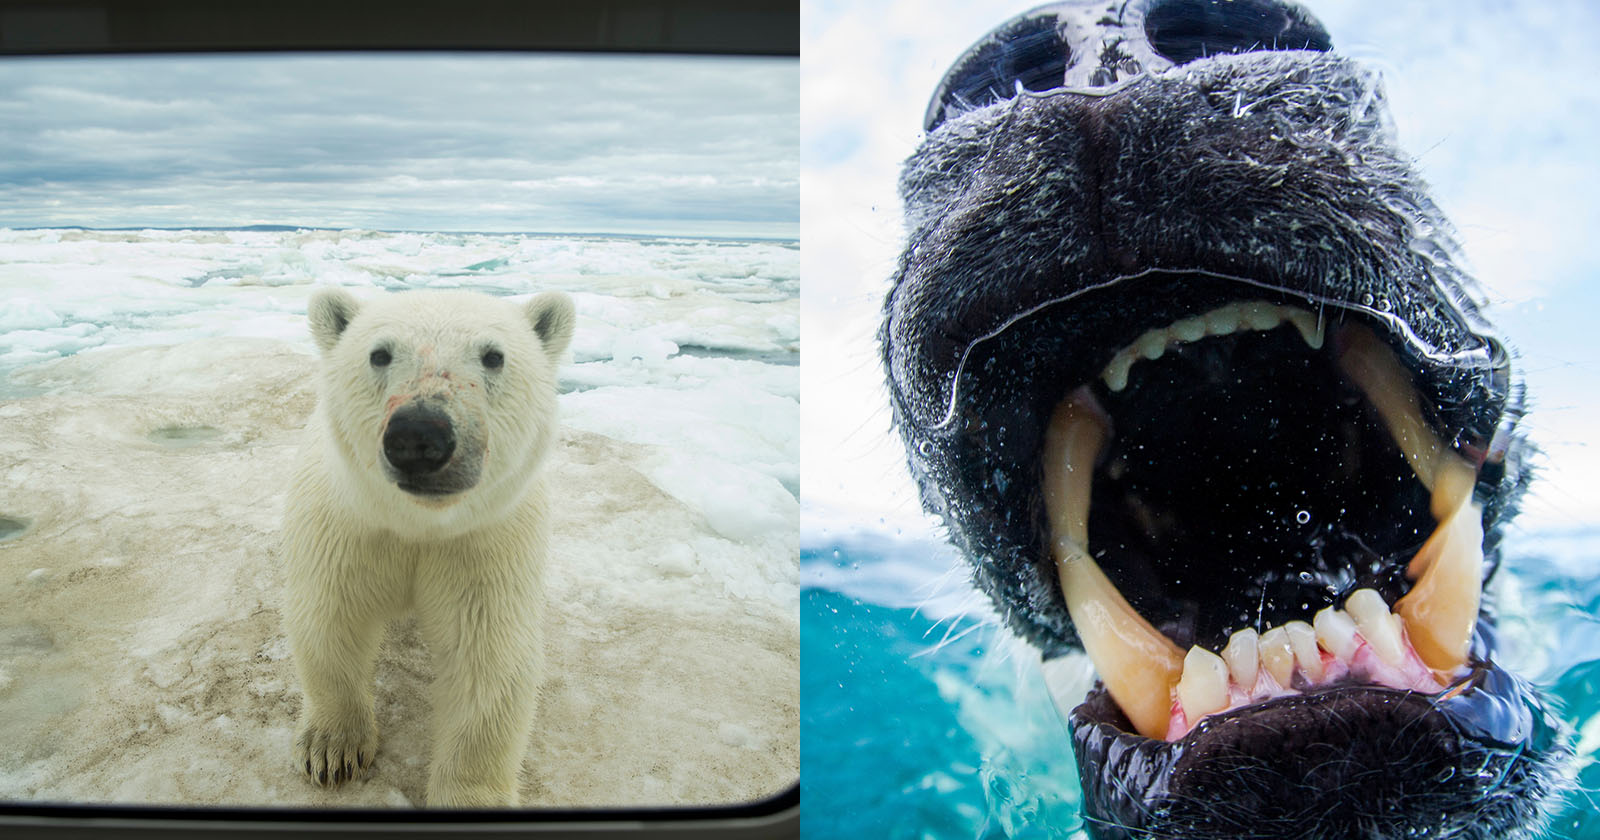 My Quest For The Perfect Polar Bear Picture